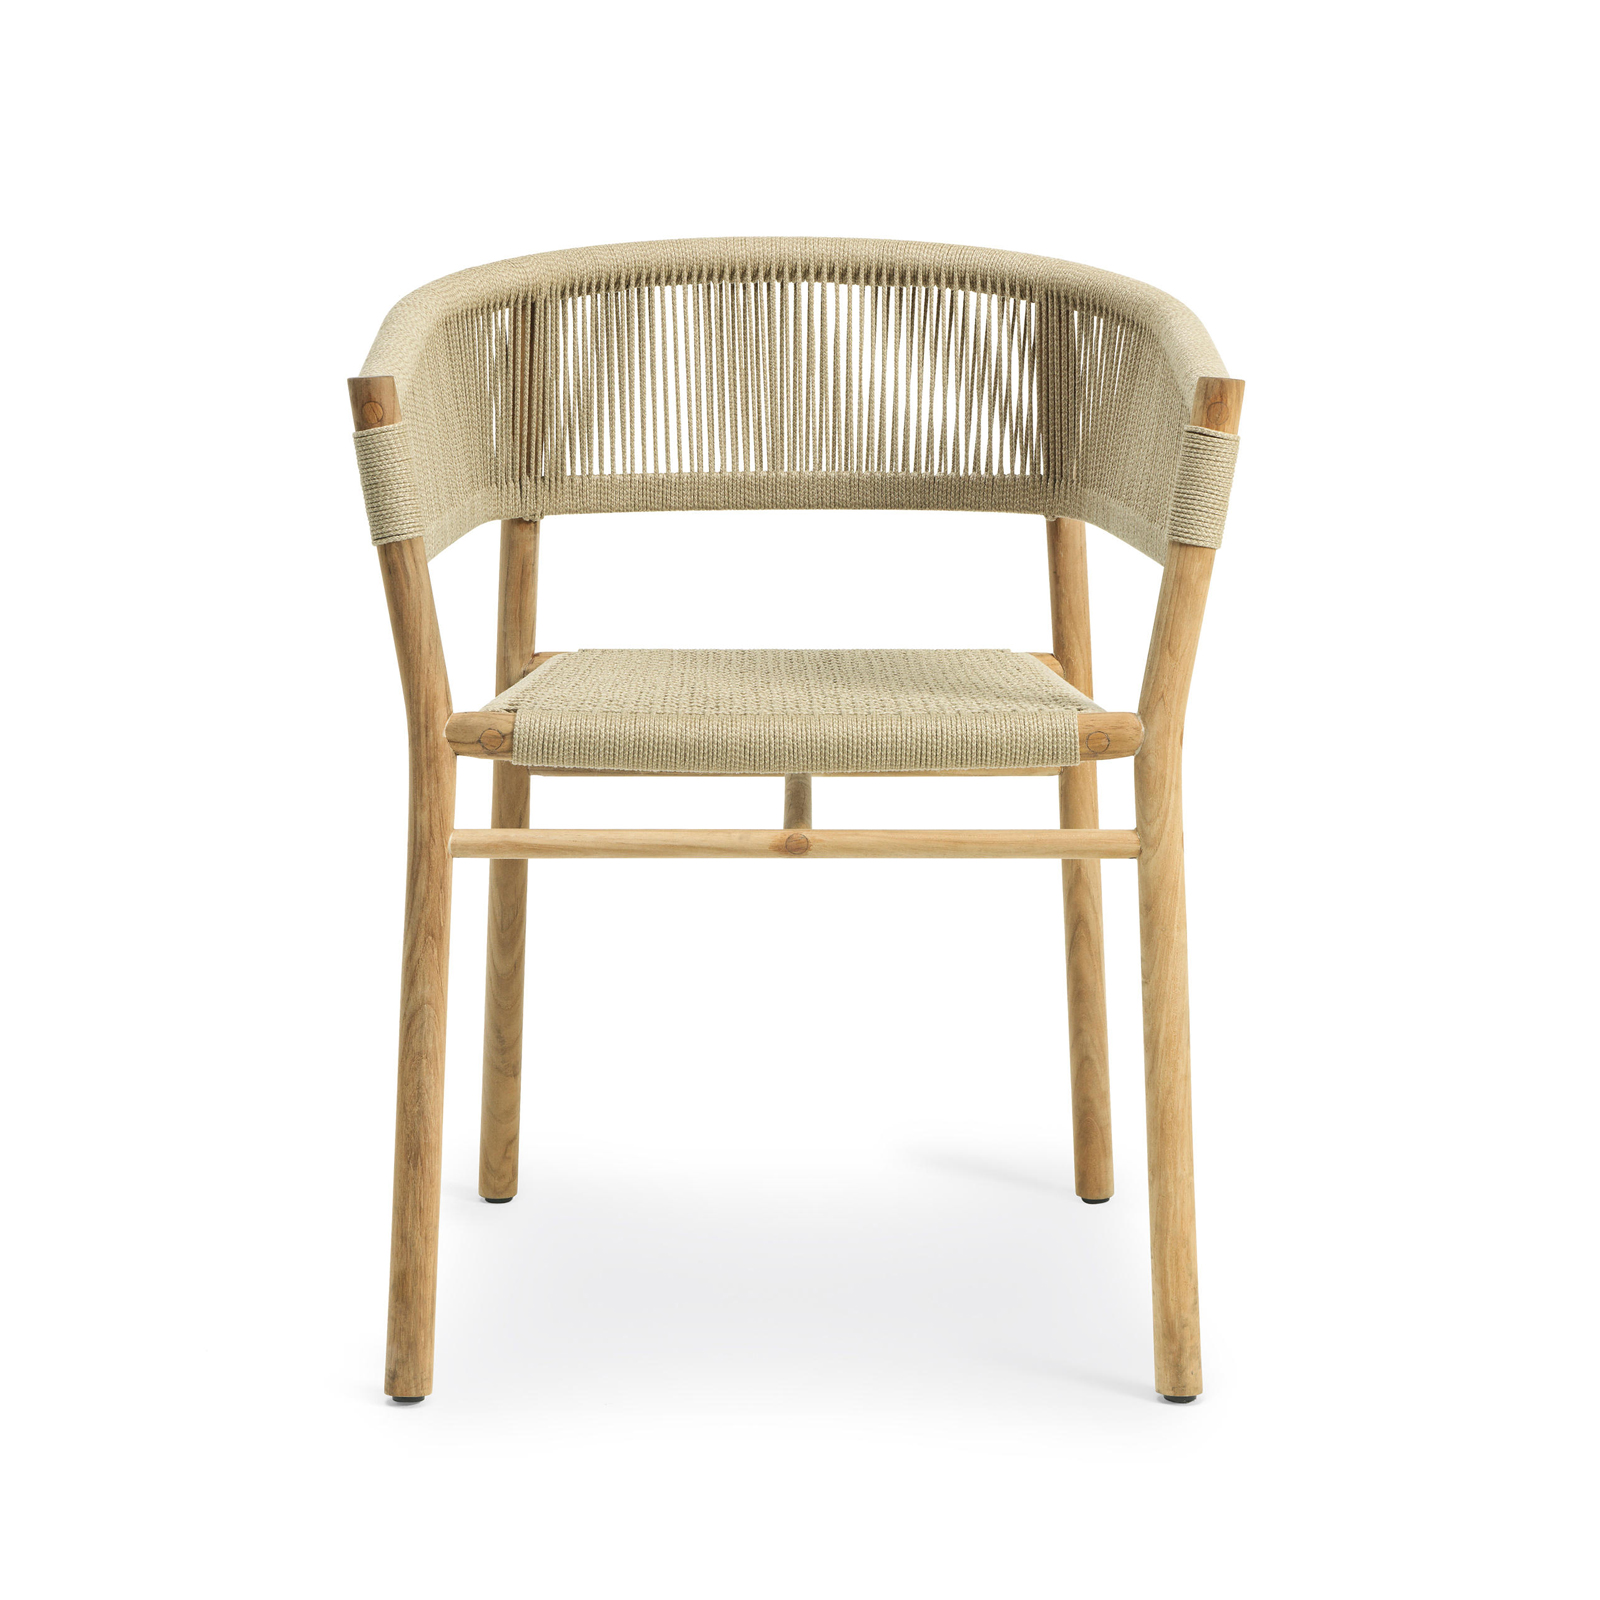 Kilt Dining Chair Teak Ethimo Core Furniture Product 2 Core Furniture Online